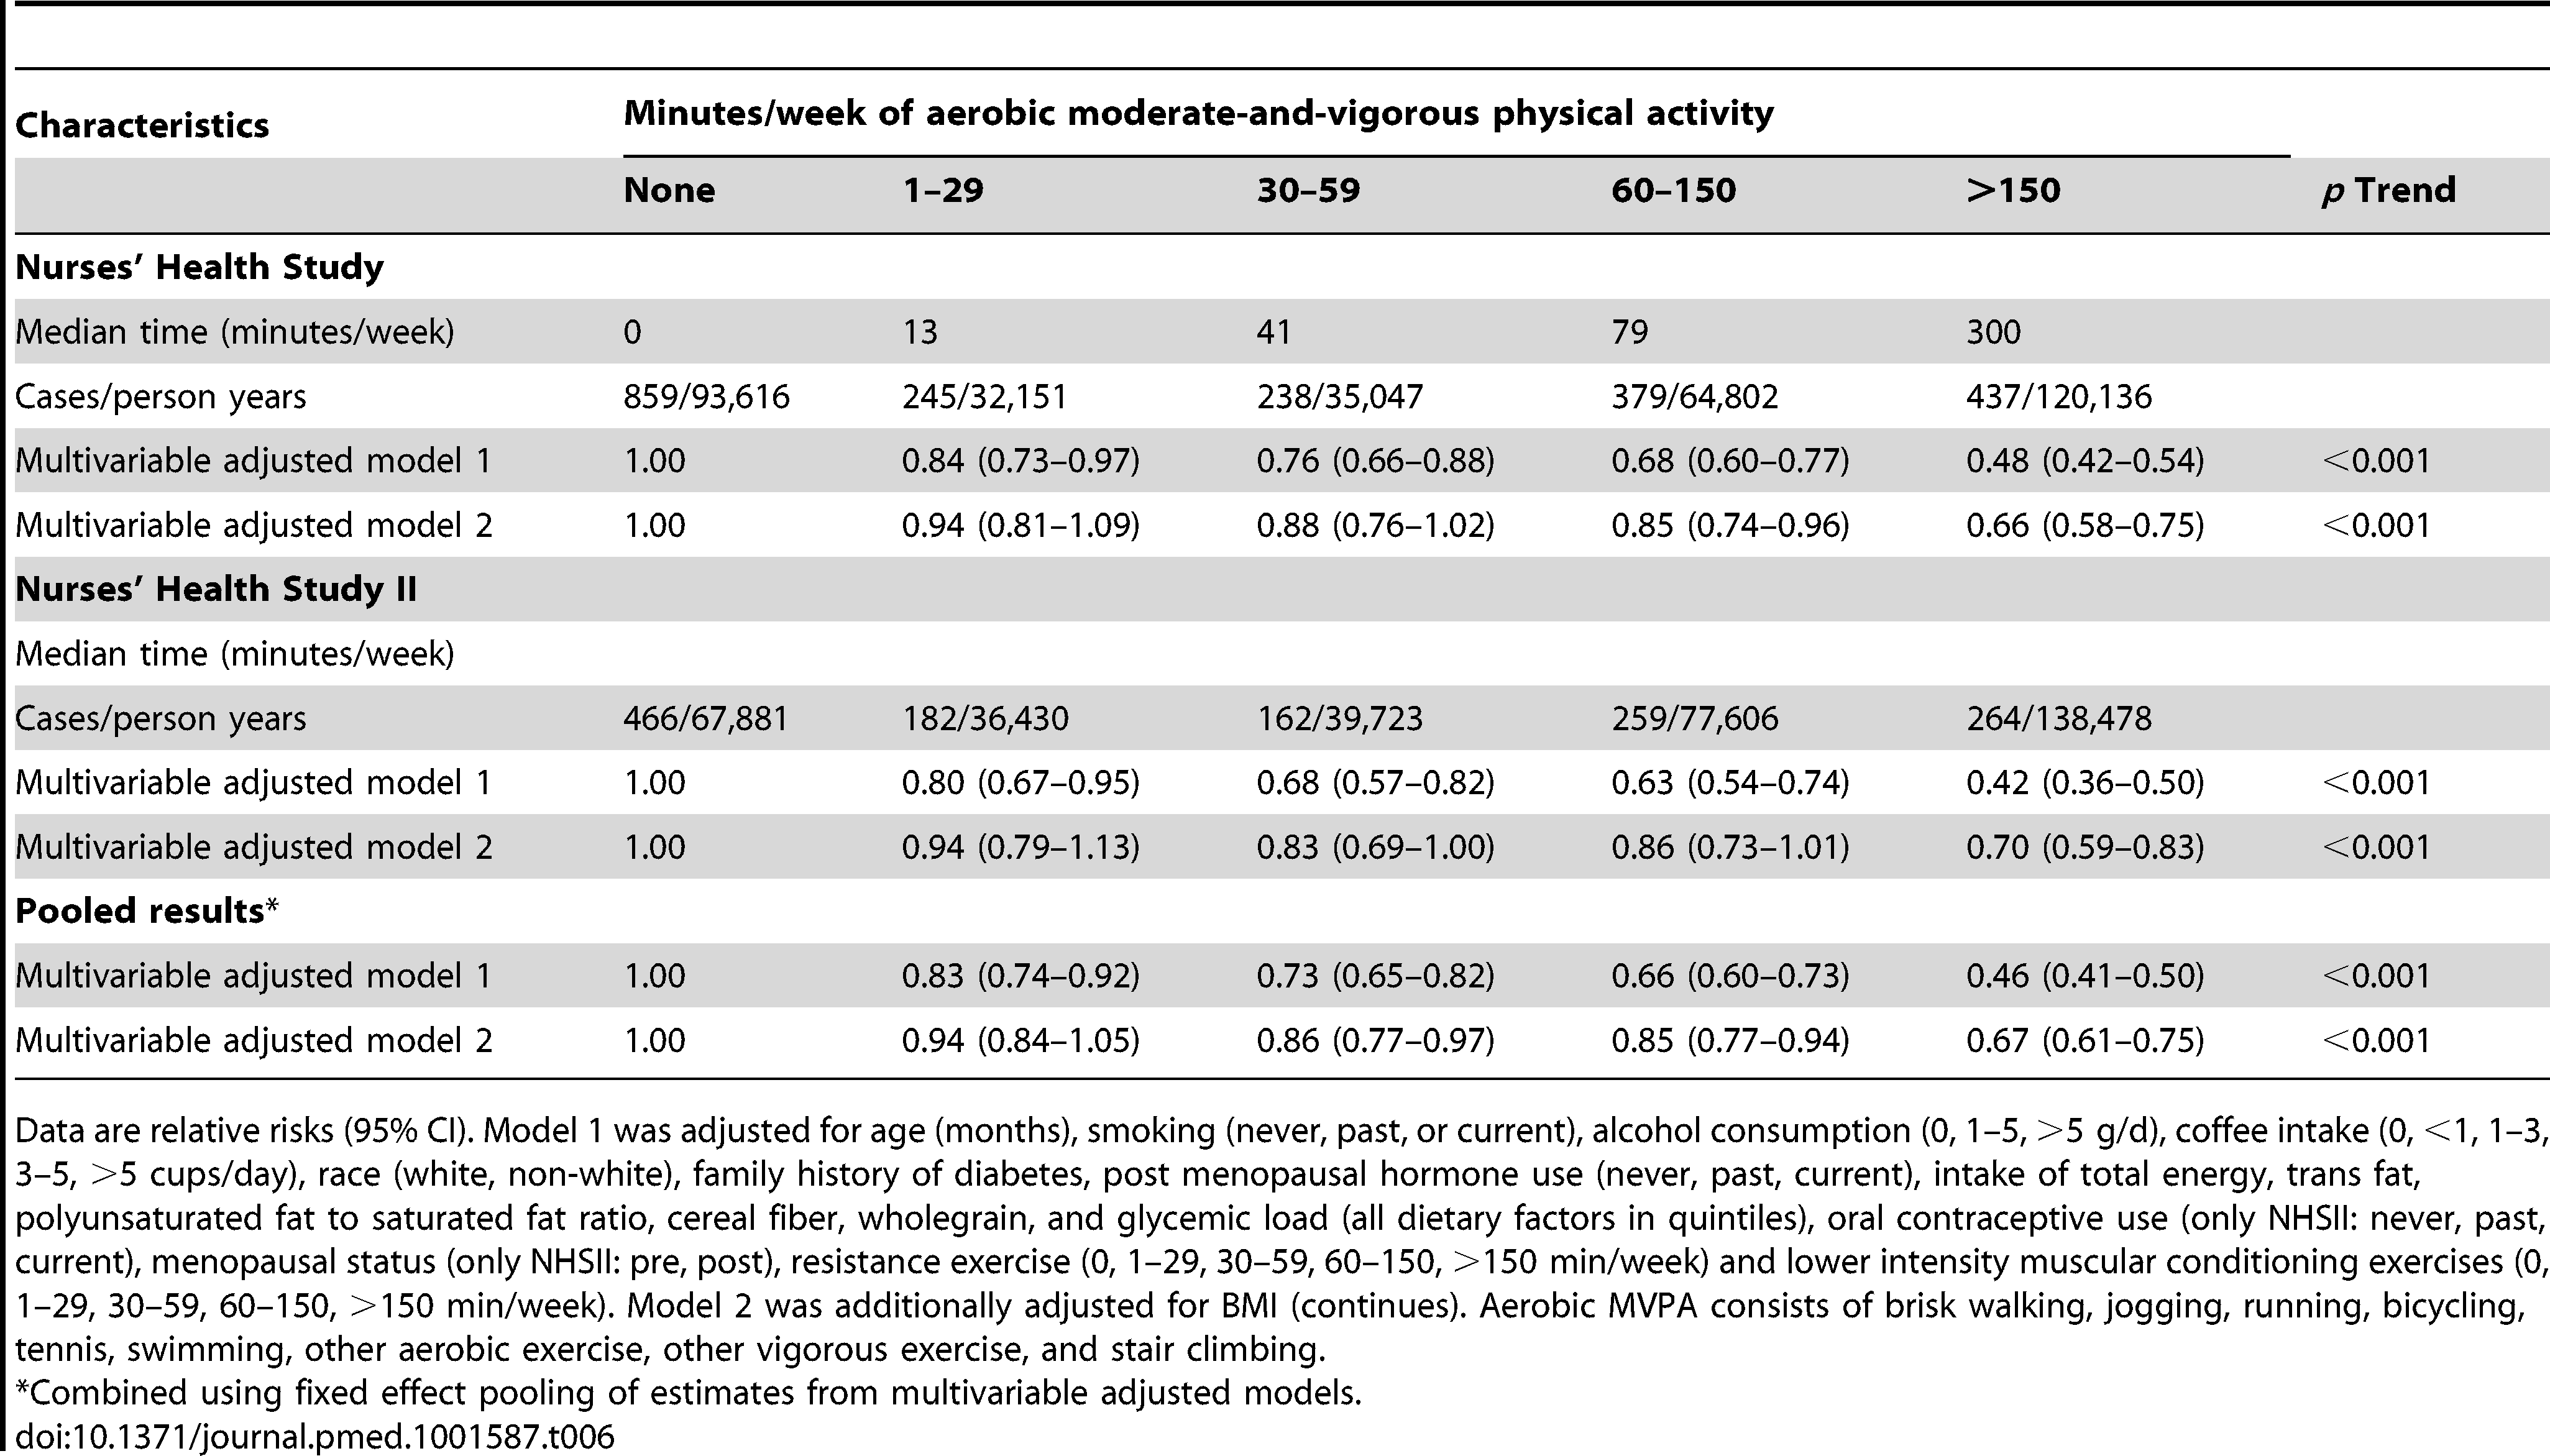 Aerobic moderate-and-vigorous physical activity and risk of type 2 diabetes in women from the Nurses' Health Study (2000–2008) and Nurses' Health Study II (2001–2009).